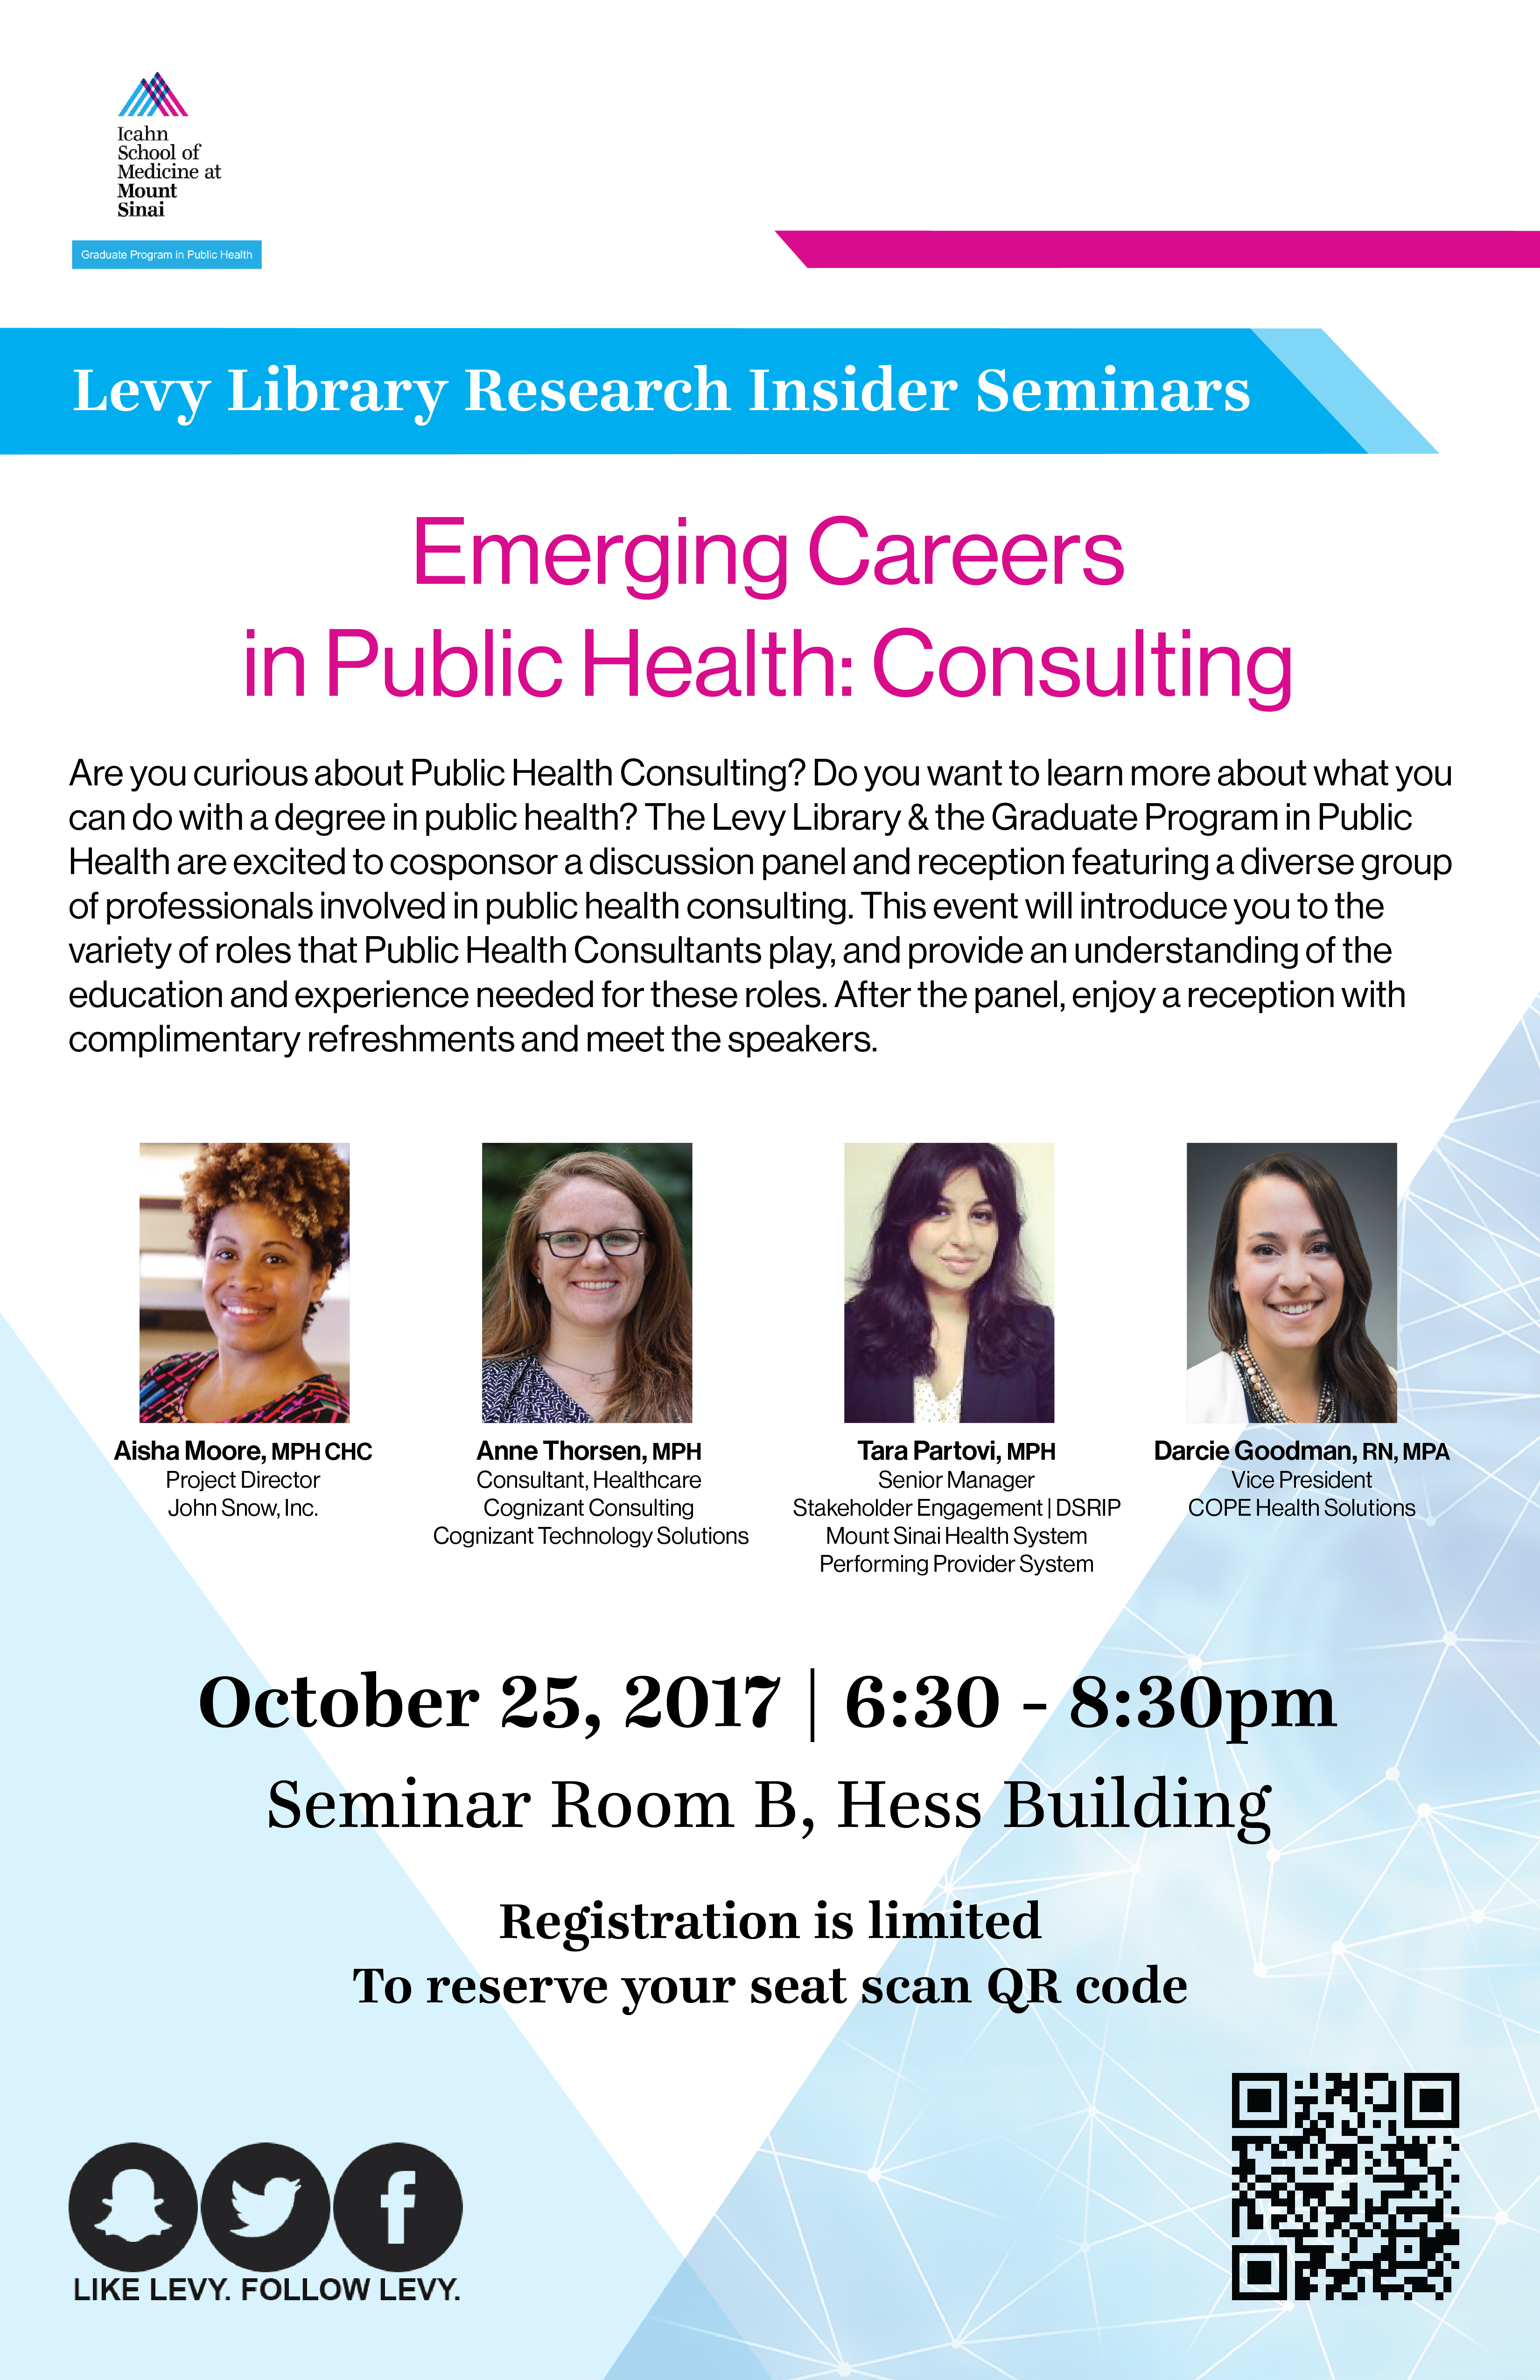 Emerging Careers in Public Health: Consulting